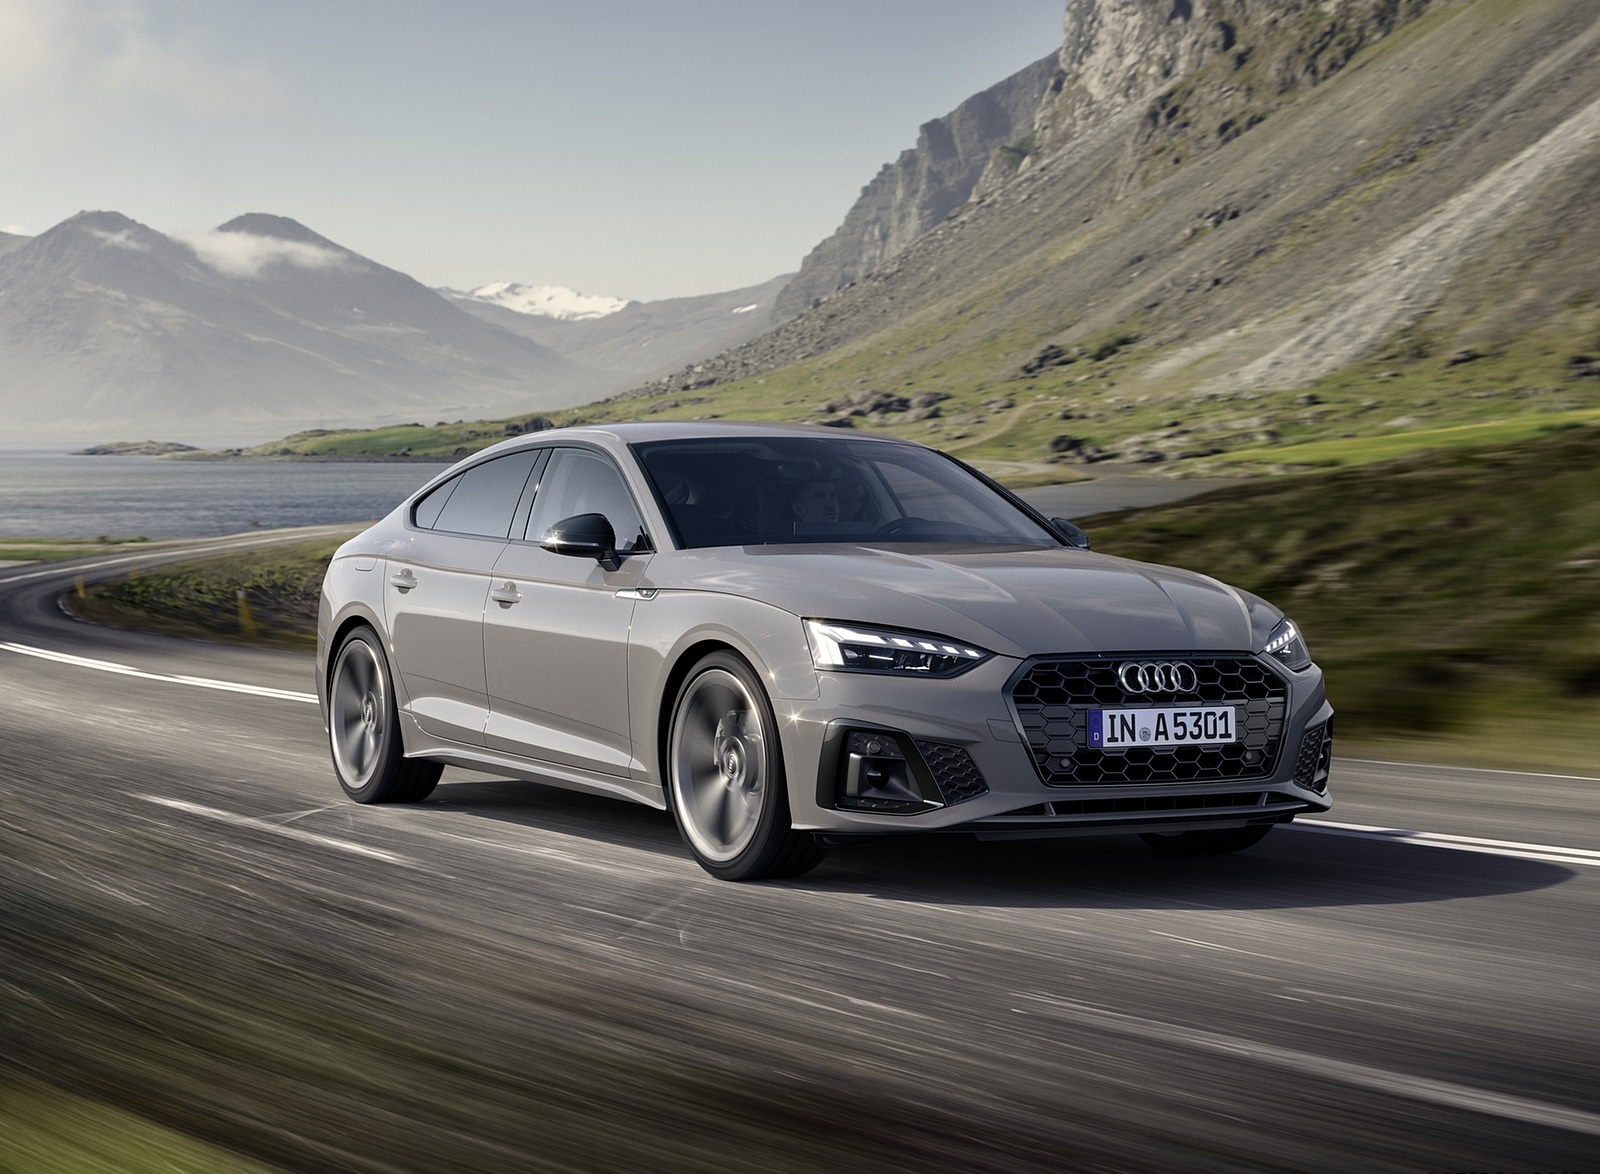 2020 Audi A5 Sportback Wallpapers 31 Hd Images Newcarcars